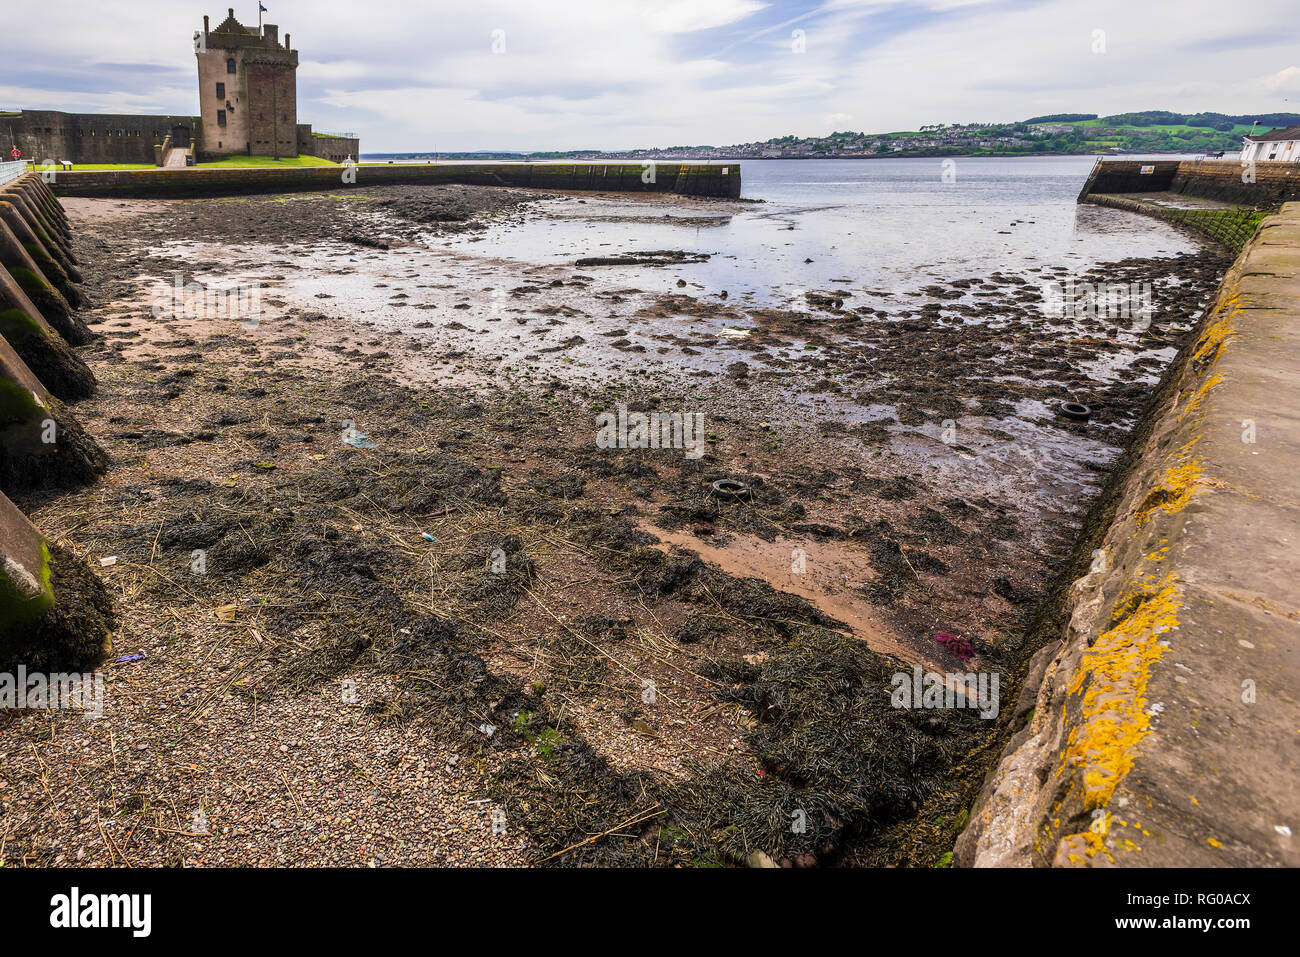 Broughty Castle and harbour - Stock Image